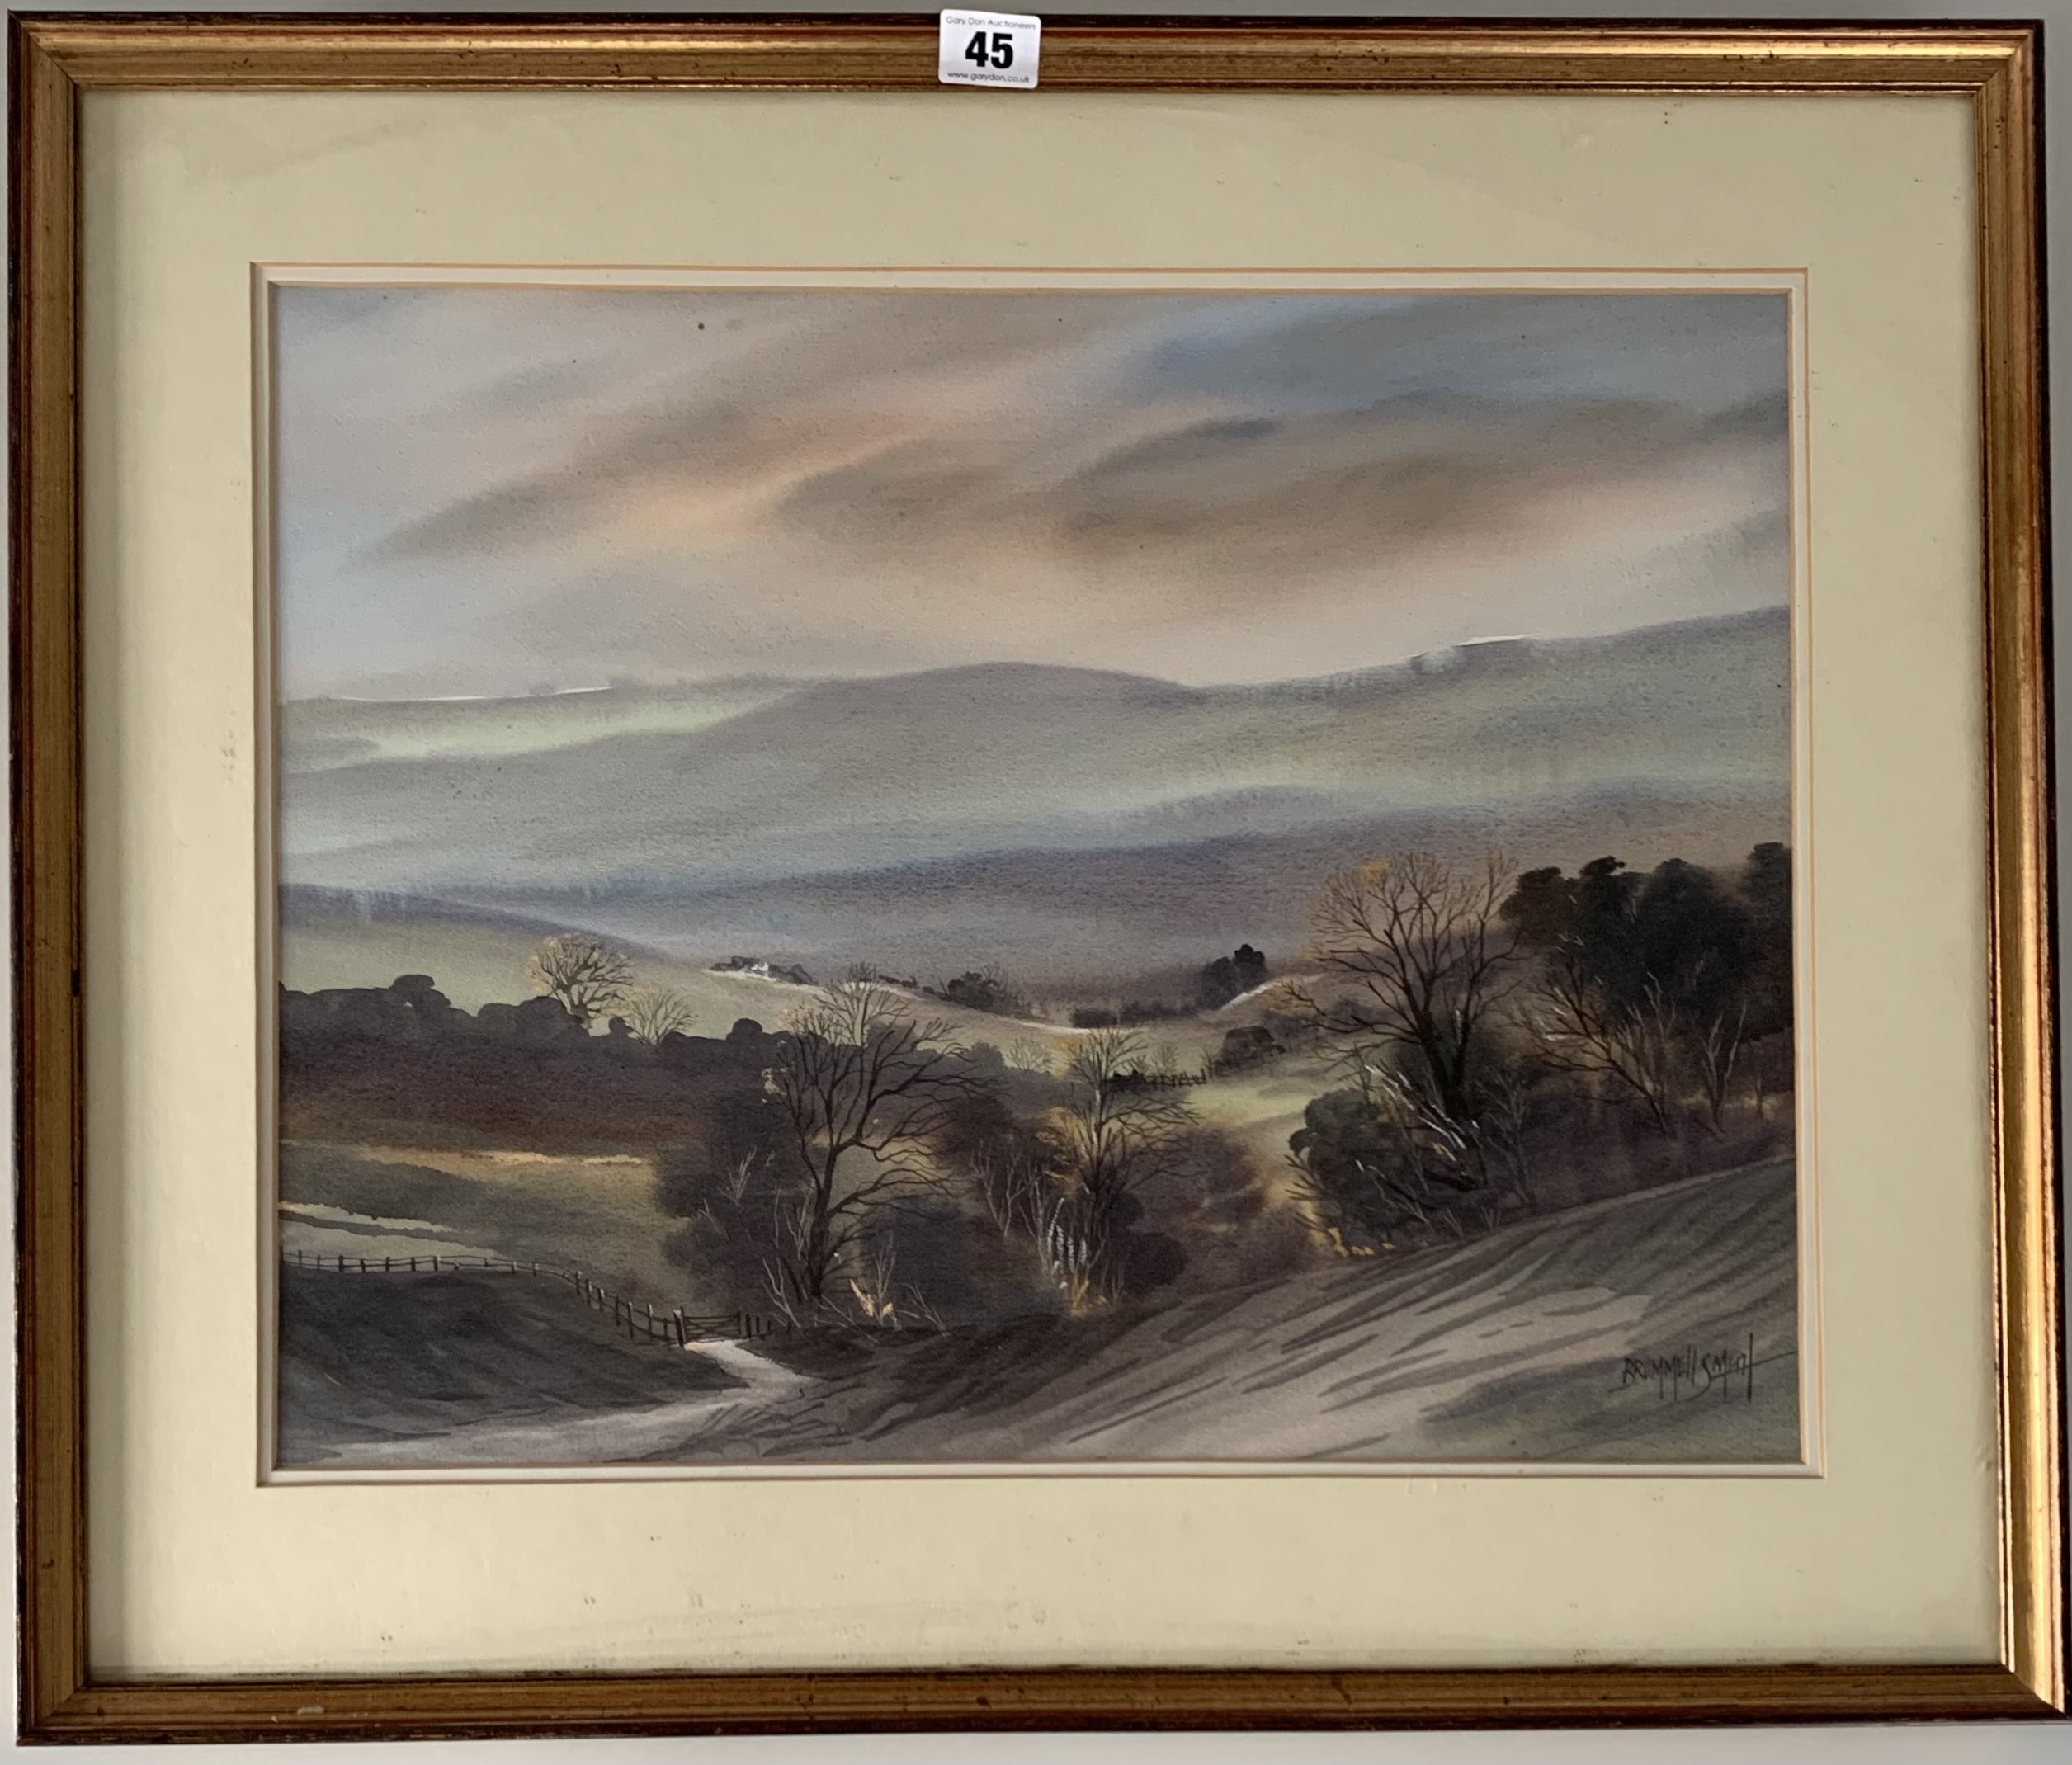 """Watercolour """"Early Morning, Nidderdale"""" by Tony Brummel Smith. Image 19"""" x 14.5"""", frame 25"""" x 21"""""""